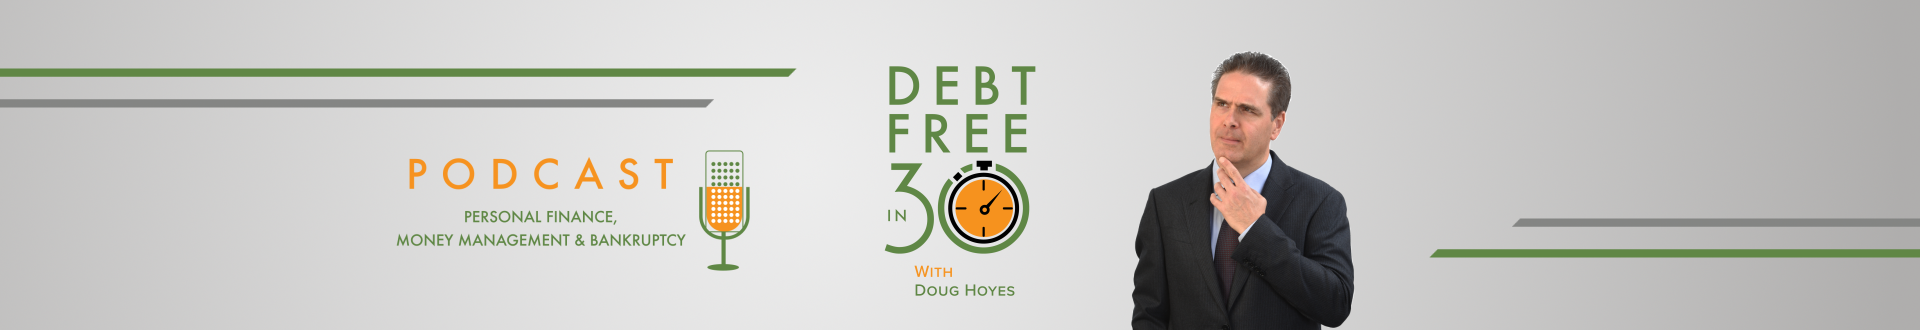 Debt Free in 30 Podcast Archive - Page 30